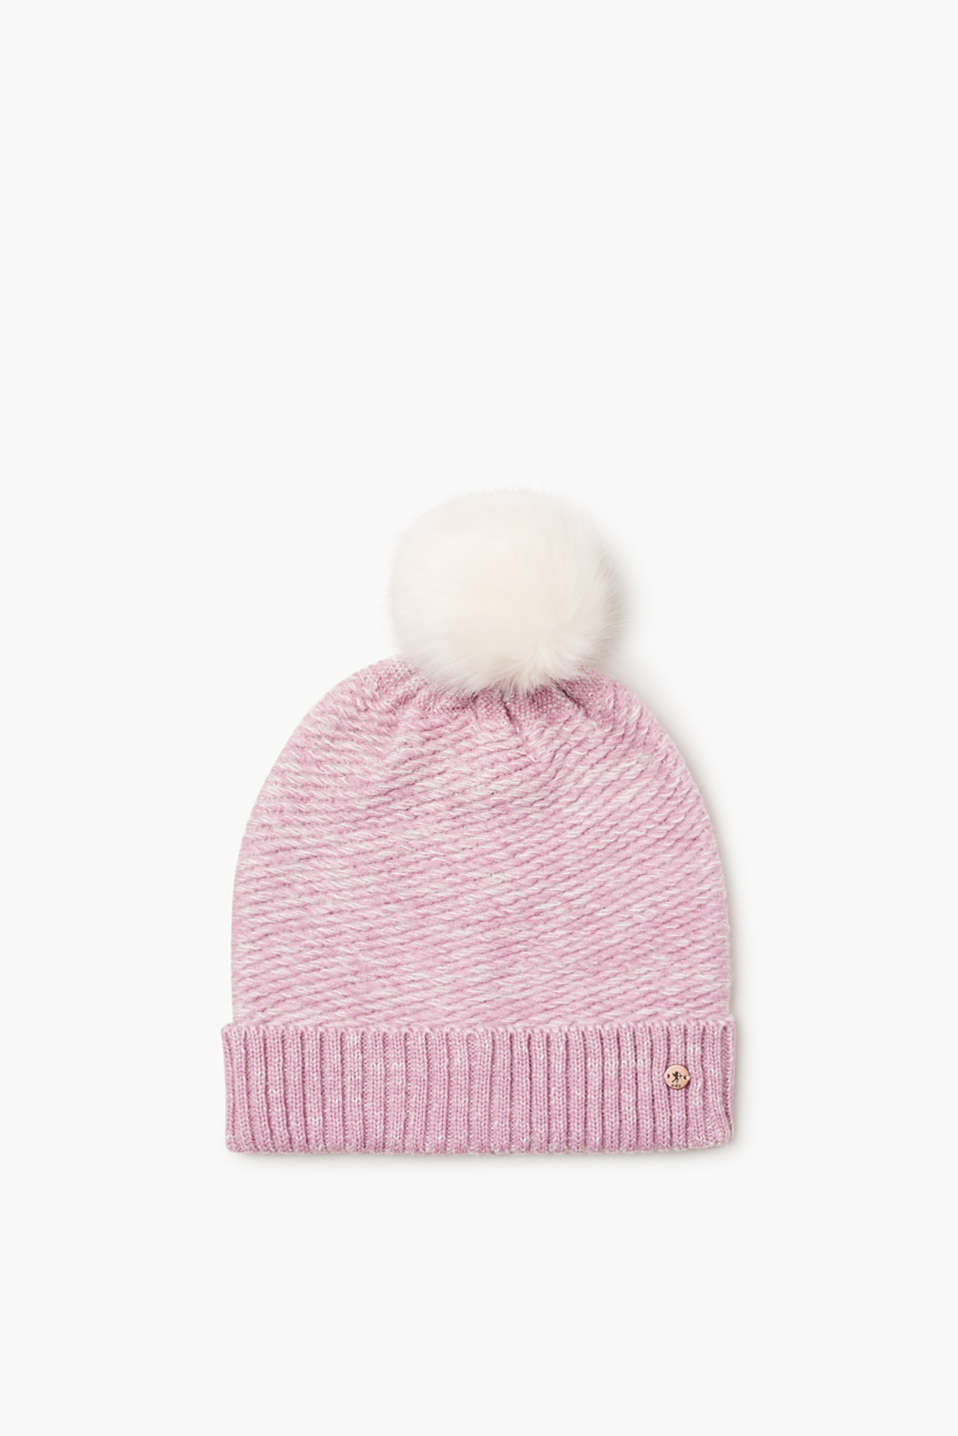 This hat warms, adds trend to your winter look and is fashionably melange and with a faux-fur pompom!